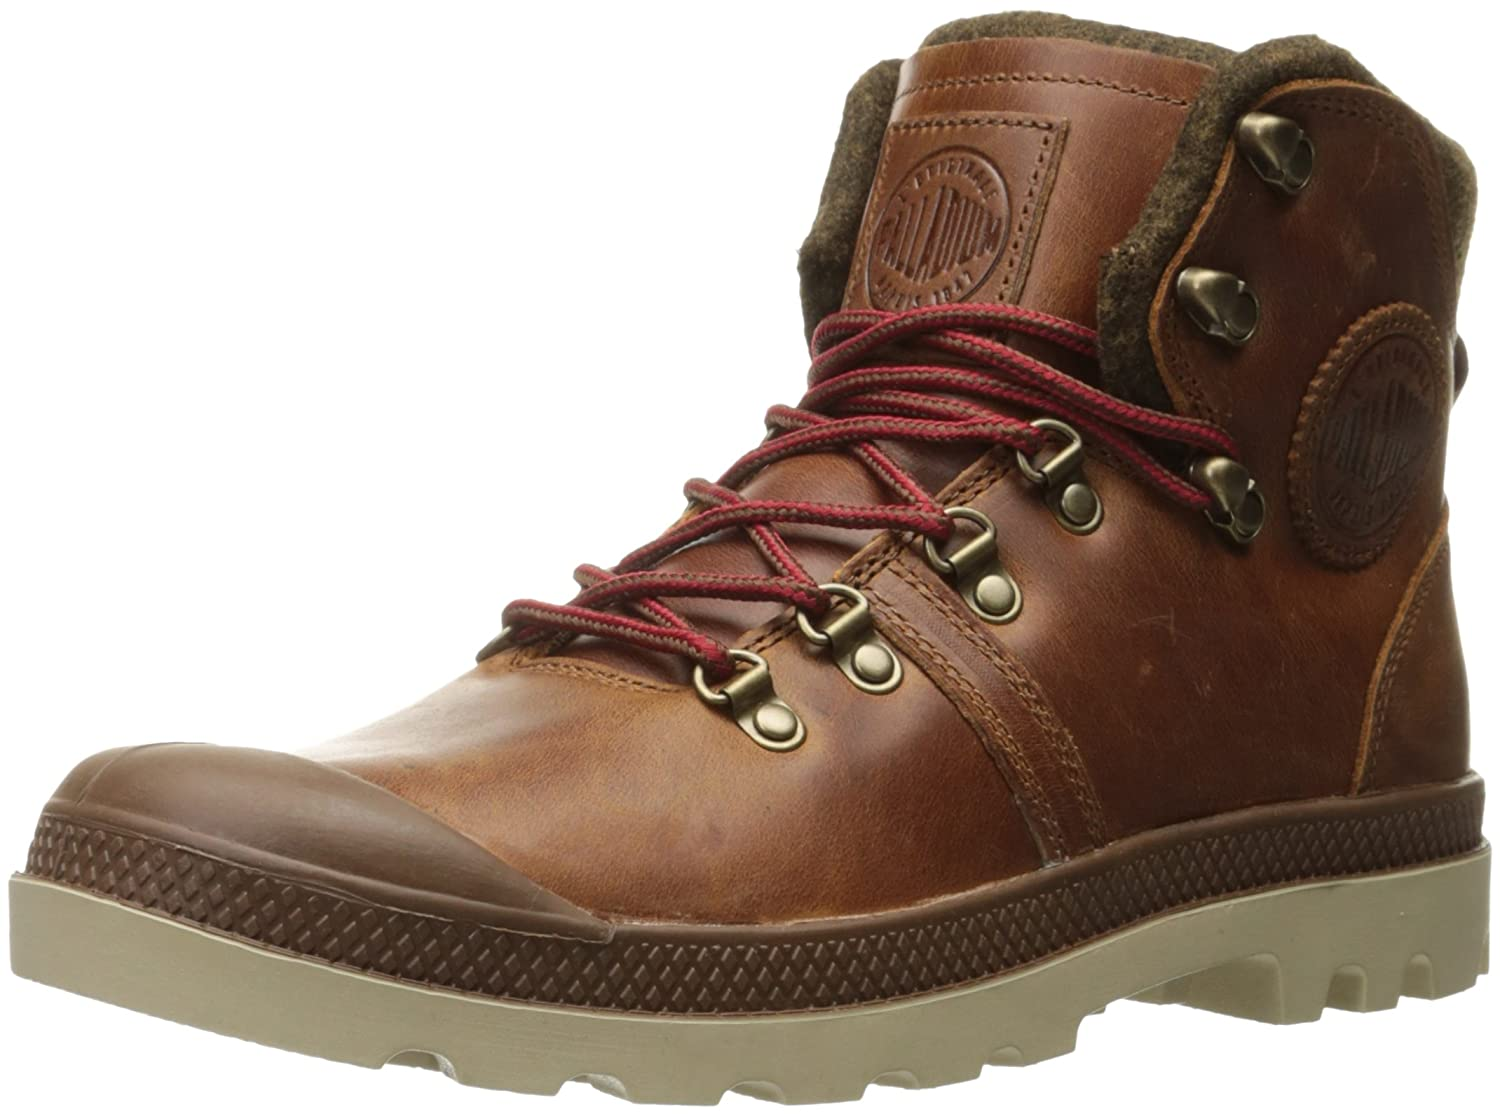 Palladium Pallabrouse Hiker - Sunrise/Red/Safari Leather Hiking Boot 8 M US 05139 05139_233-41